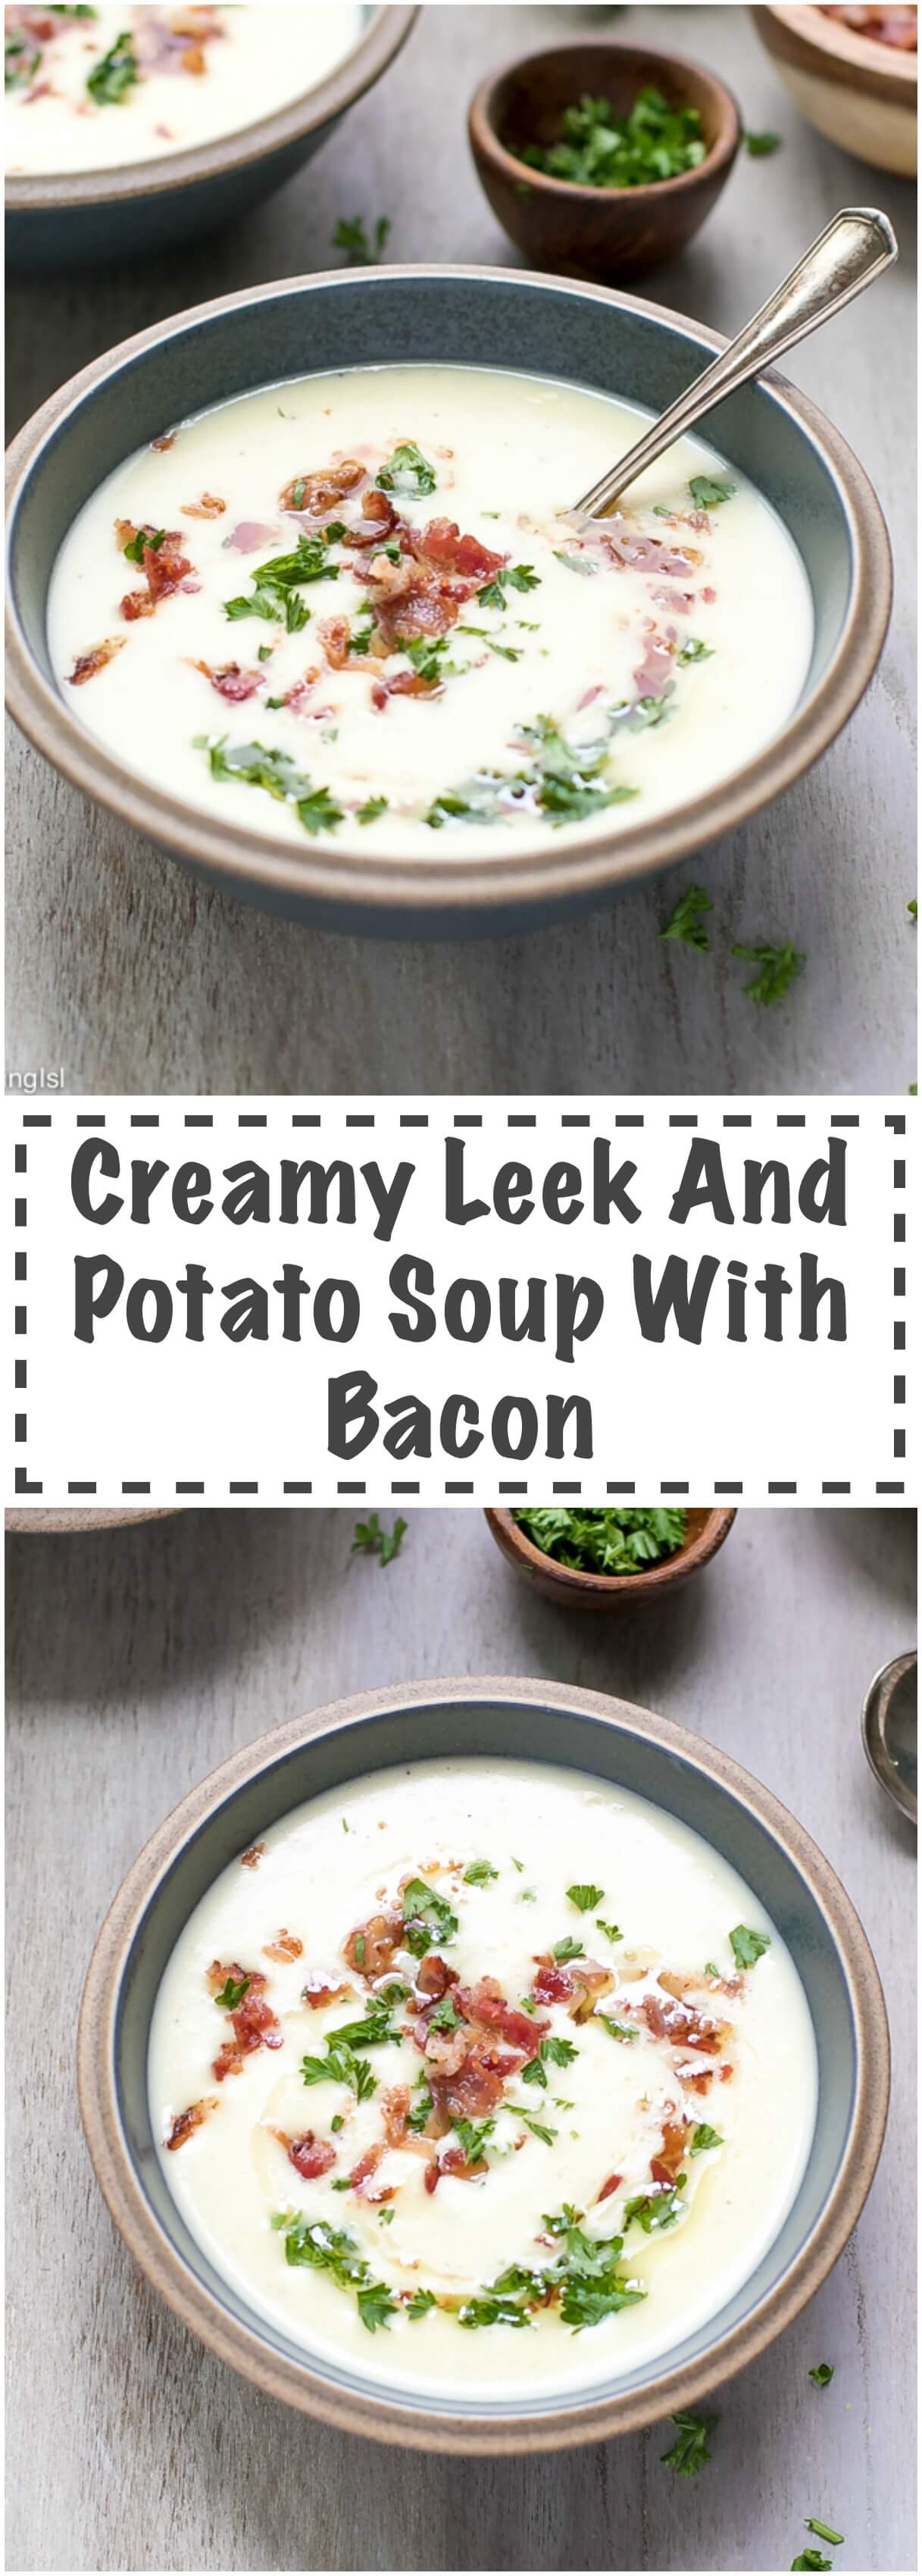 Creamy Leek And Potato Soup With Bacon Recipe - quick and easy to make, smooth and flavorful, perfect for lunch or dinner. This soup could be made year round and keeps well in the fridge or freezer. Kid friendly. perfectly seasoned, warm, topped with crunchy and flavorful bacon.